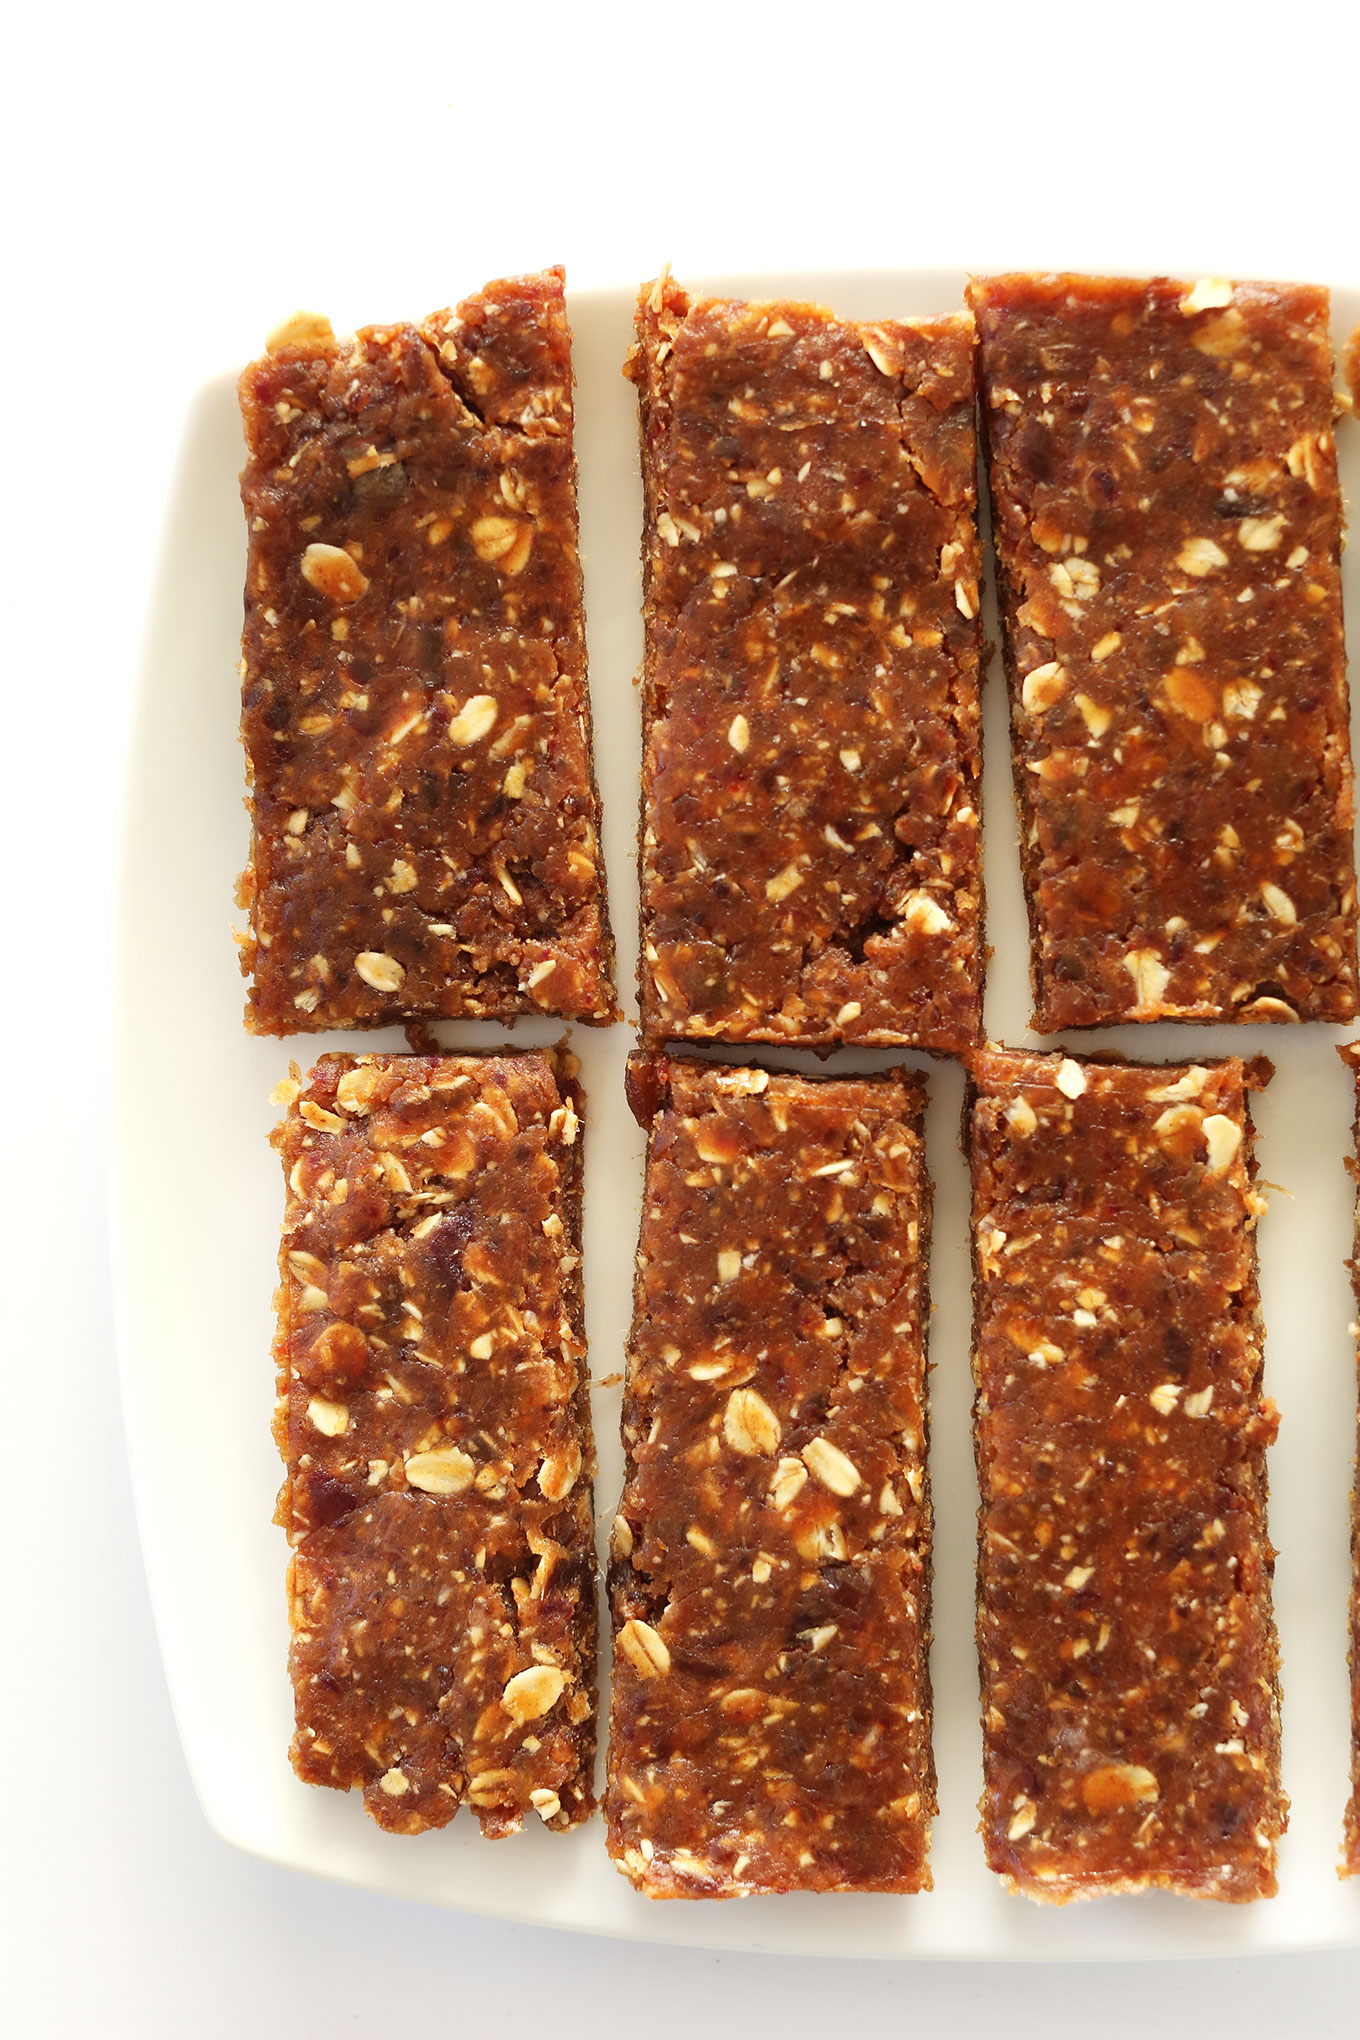 Freshly sliced homemade gluten-free vegan Peanut Butter Granola Bars